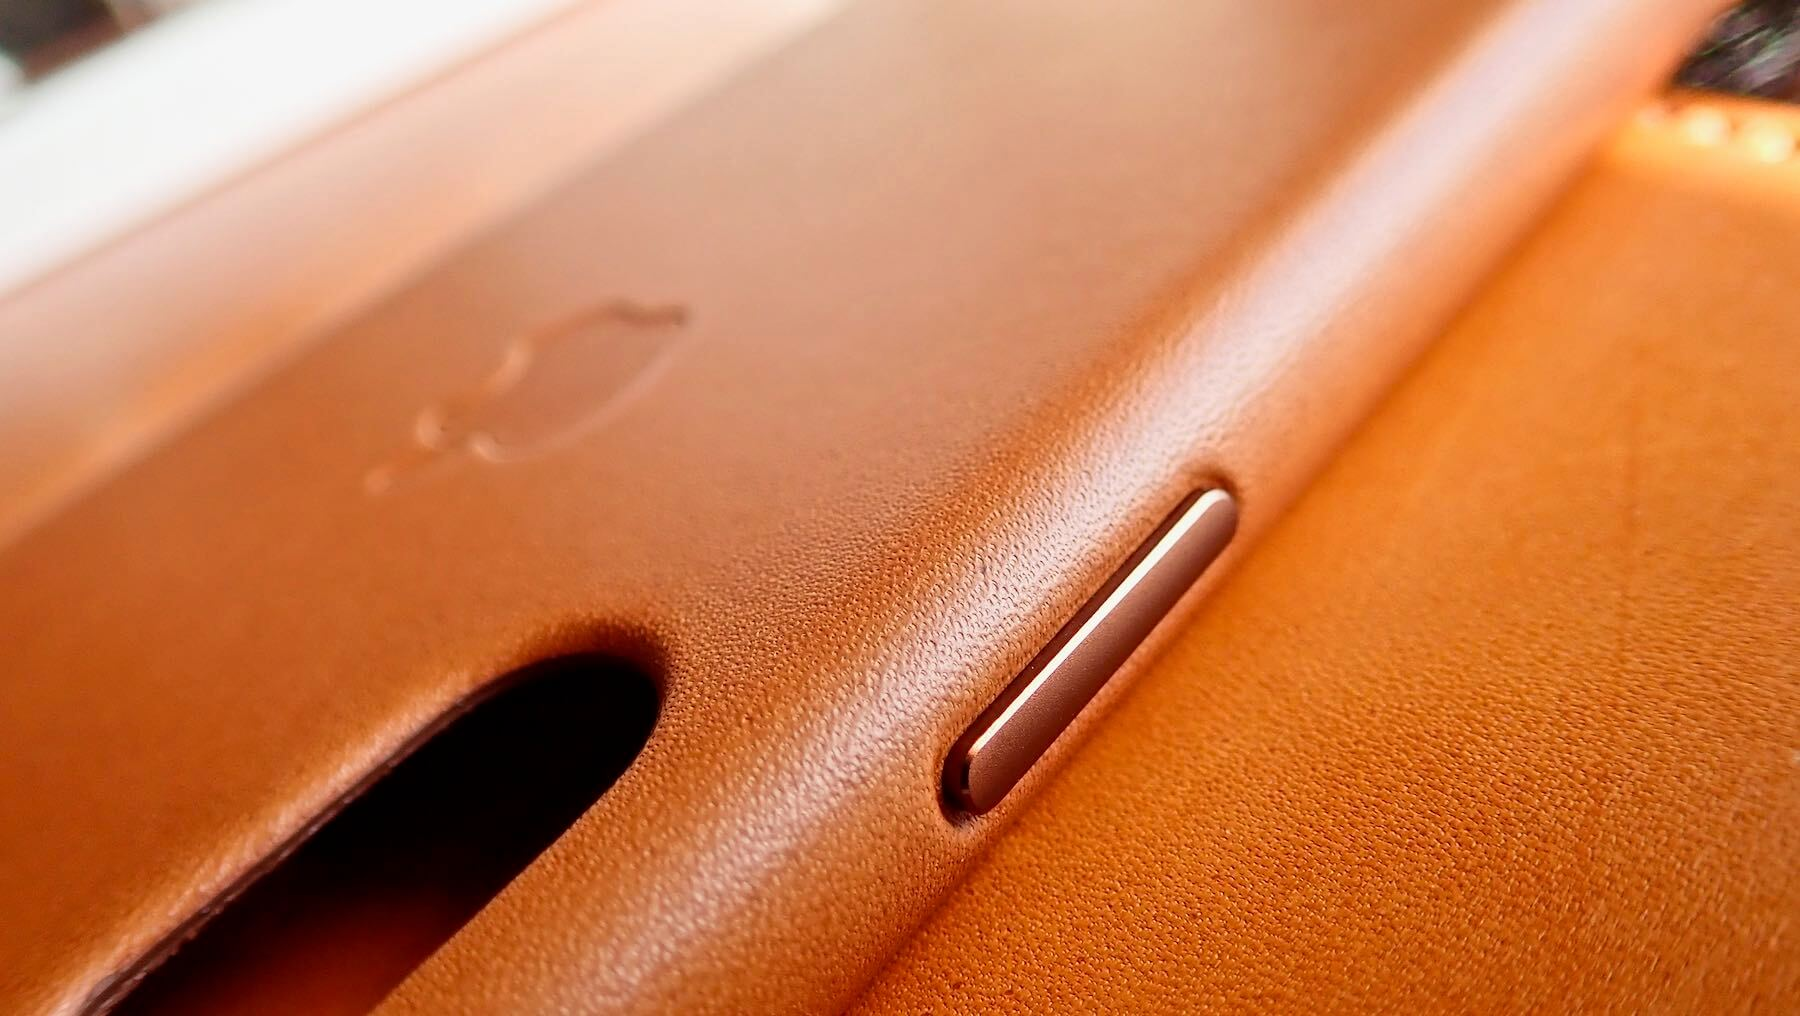 0191 iPhone X Apple Leather Case Saddle Brown Review 13